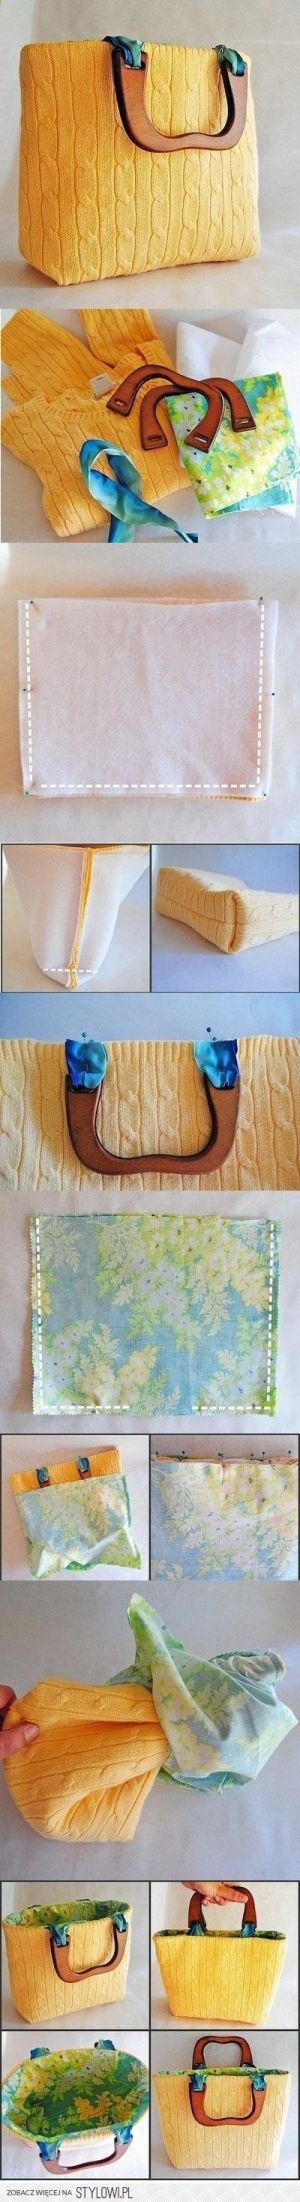 Bag made from old sweater by gingersnaps